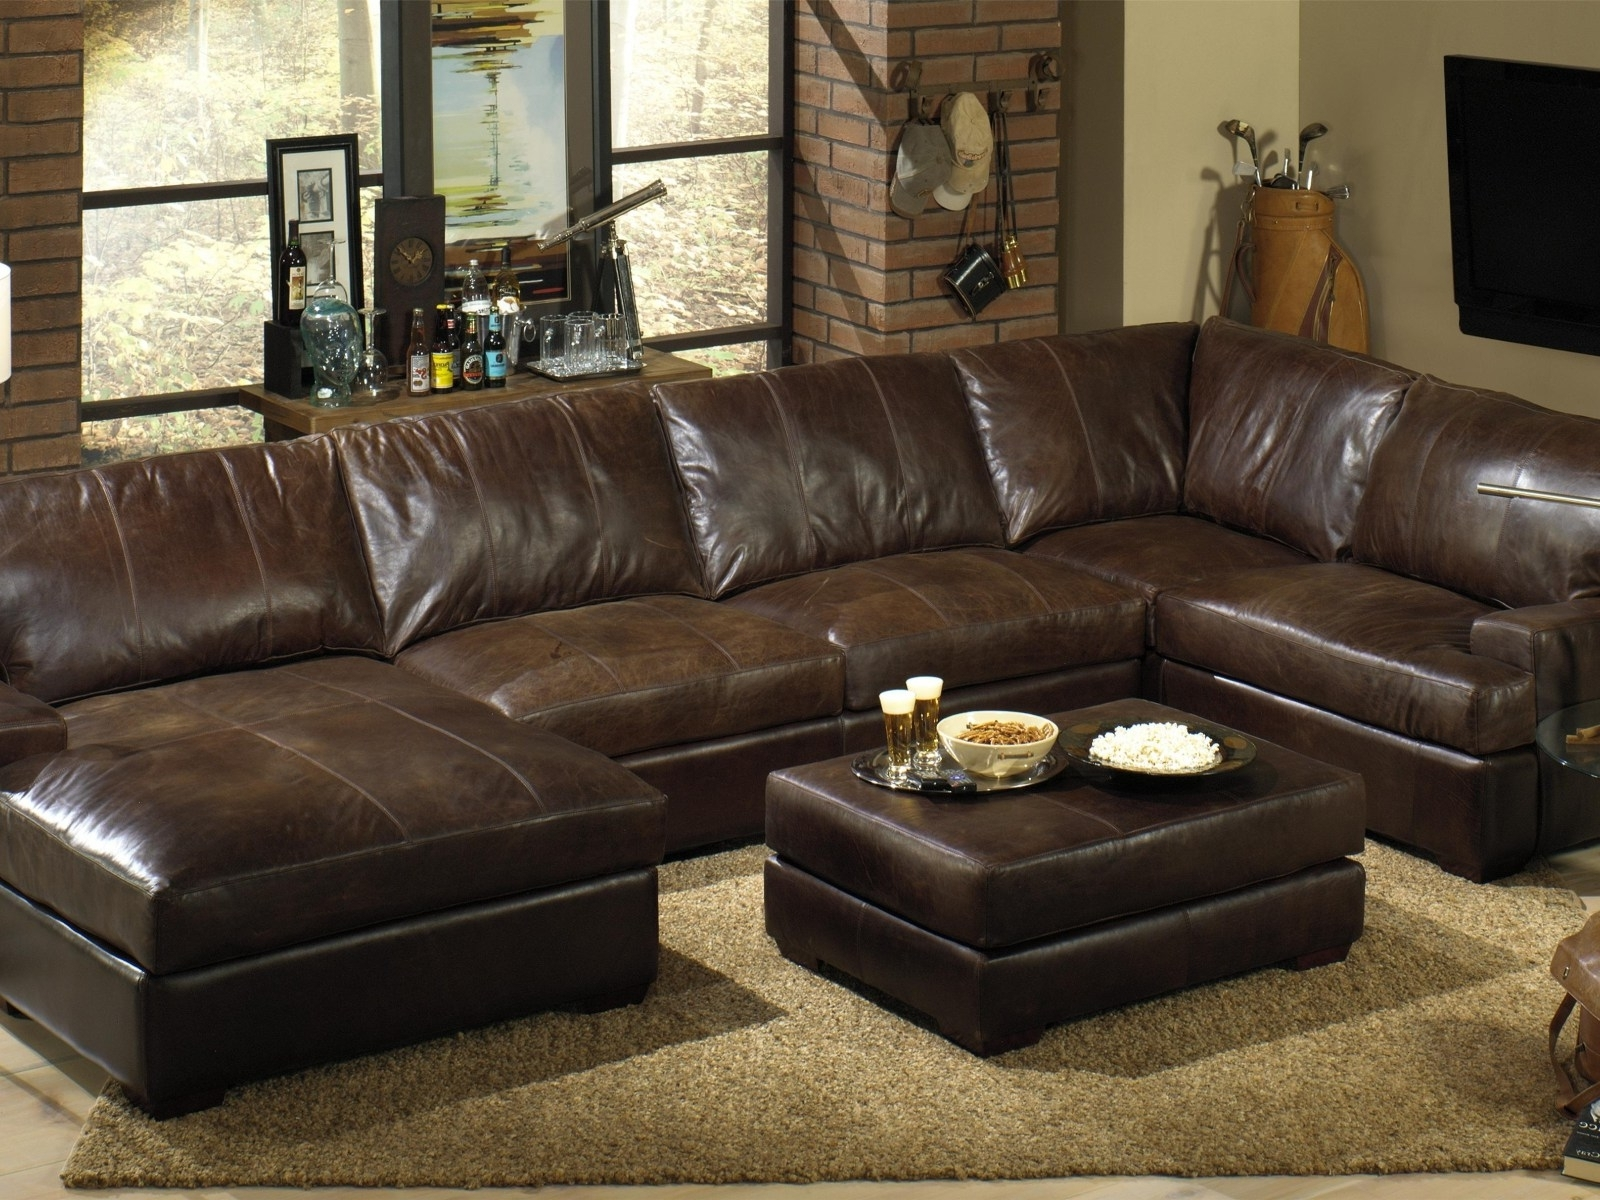 Leather Couches With Chaise Lounge With Well Known ▻ Sofa : 39 Sectional Sofa With Chaise Lounge Leather Sectional (View 9 of 15)